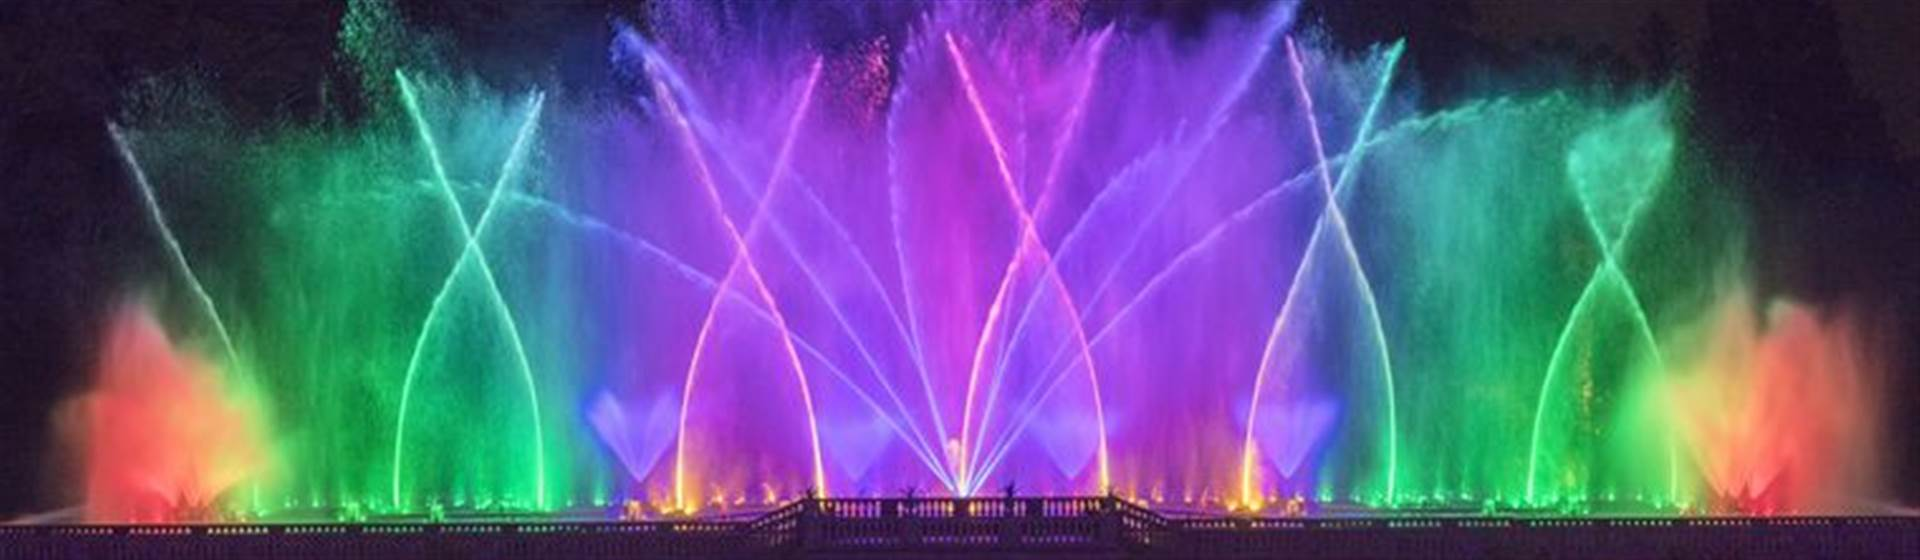 Longwood Gardens, Festival of Fountains